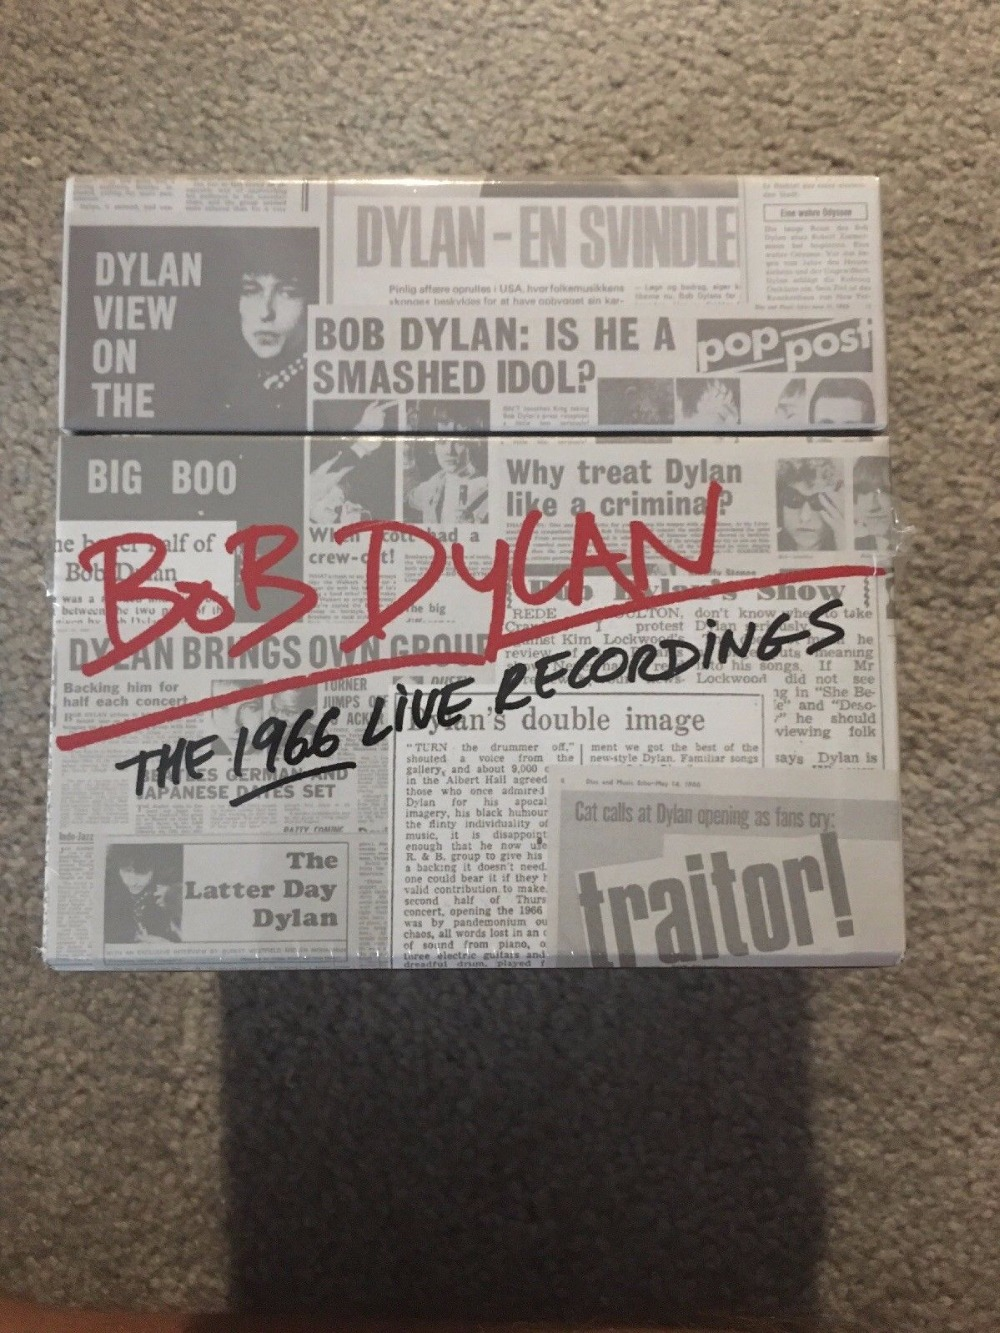 Bob Dylan The 1966 Live Recordings 36 CD BOX SET NEW SEALED цена 2017